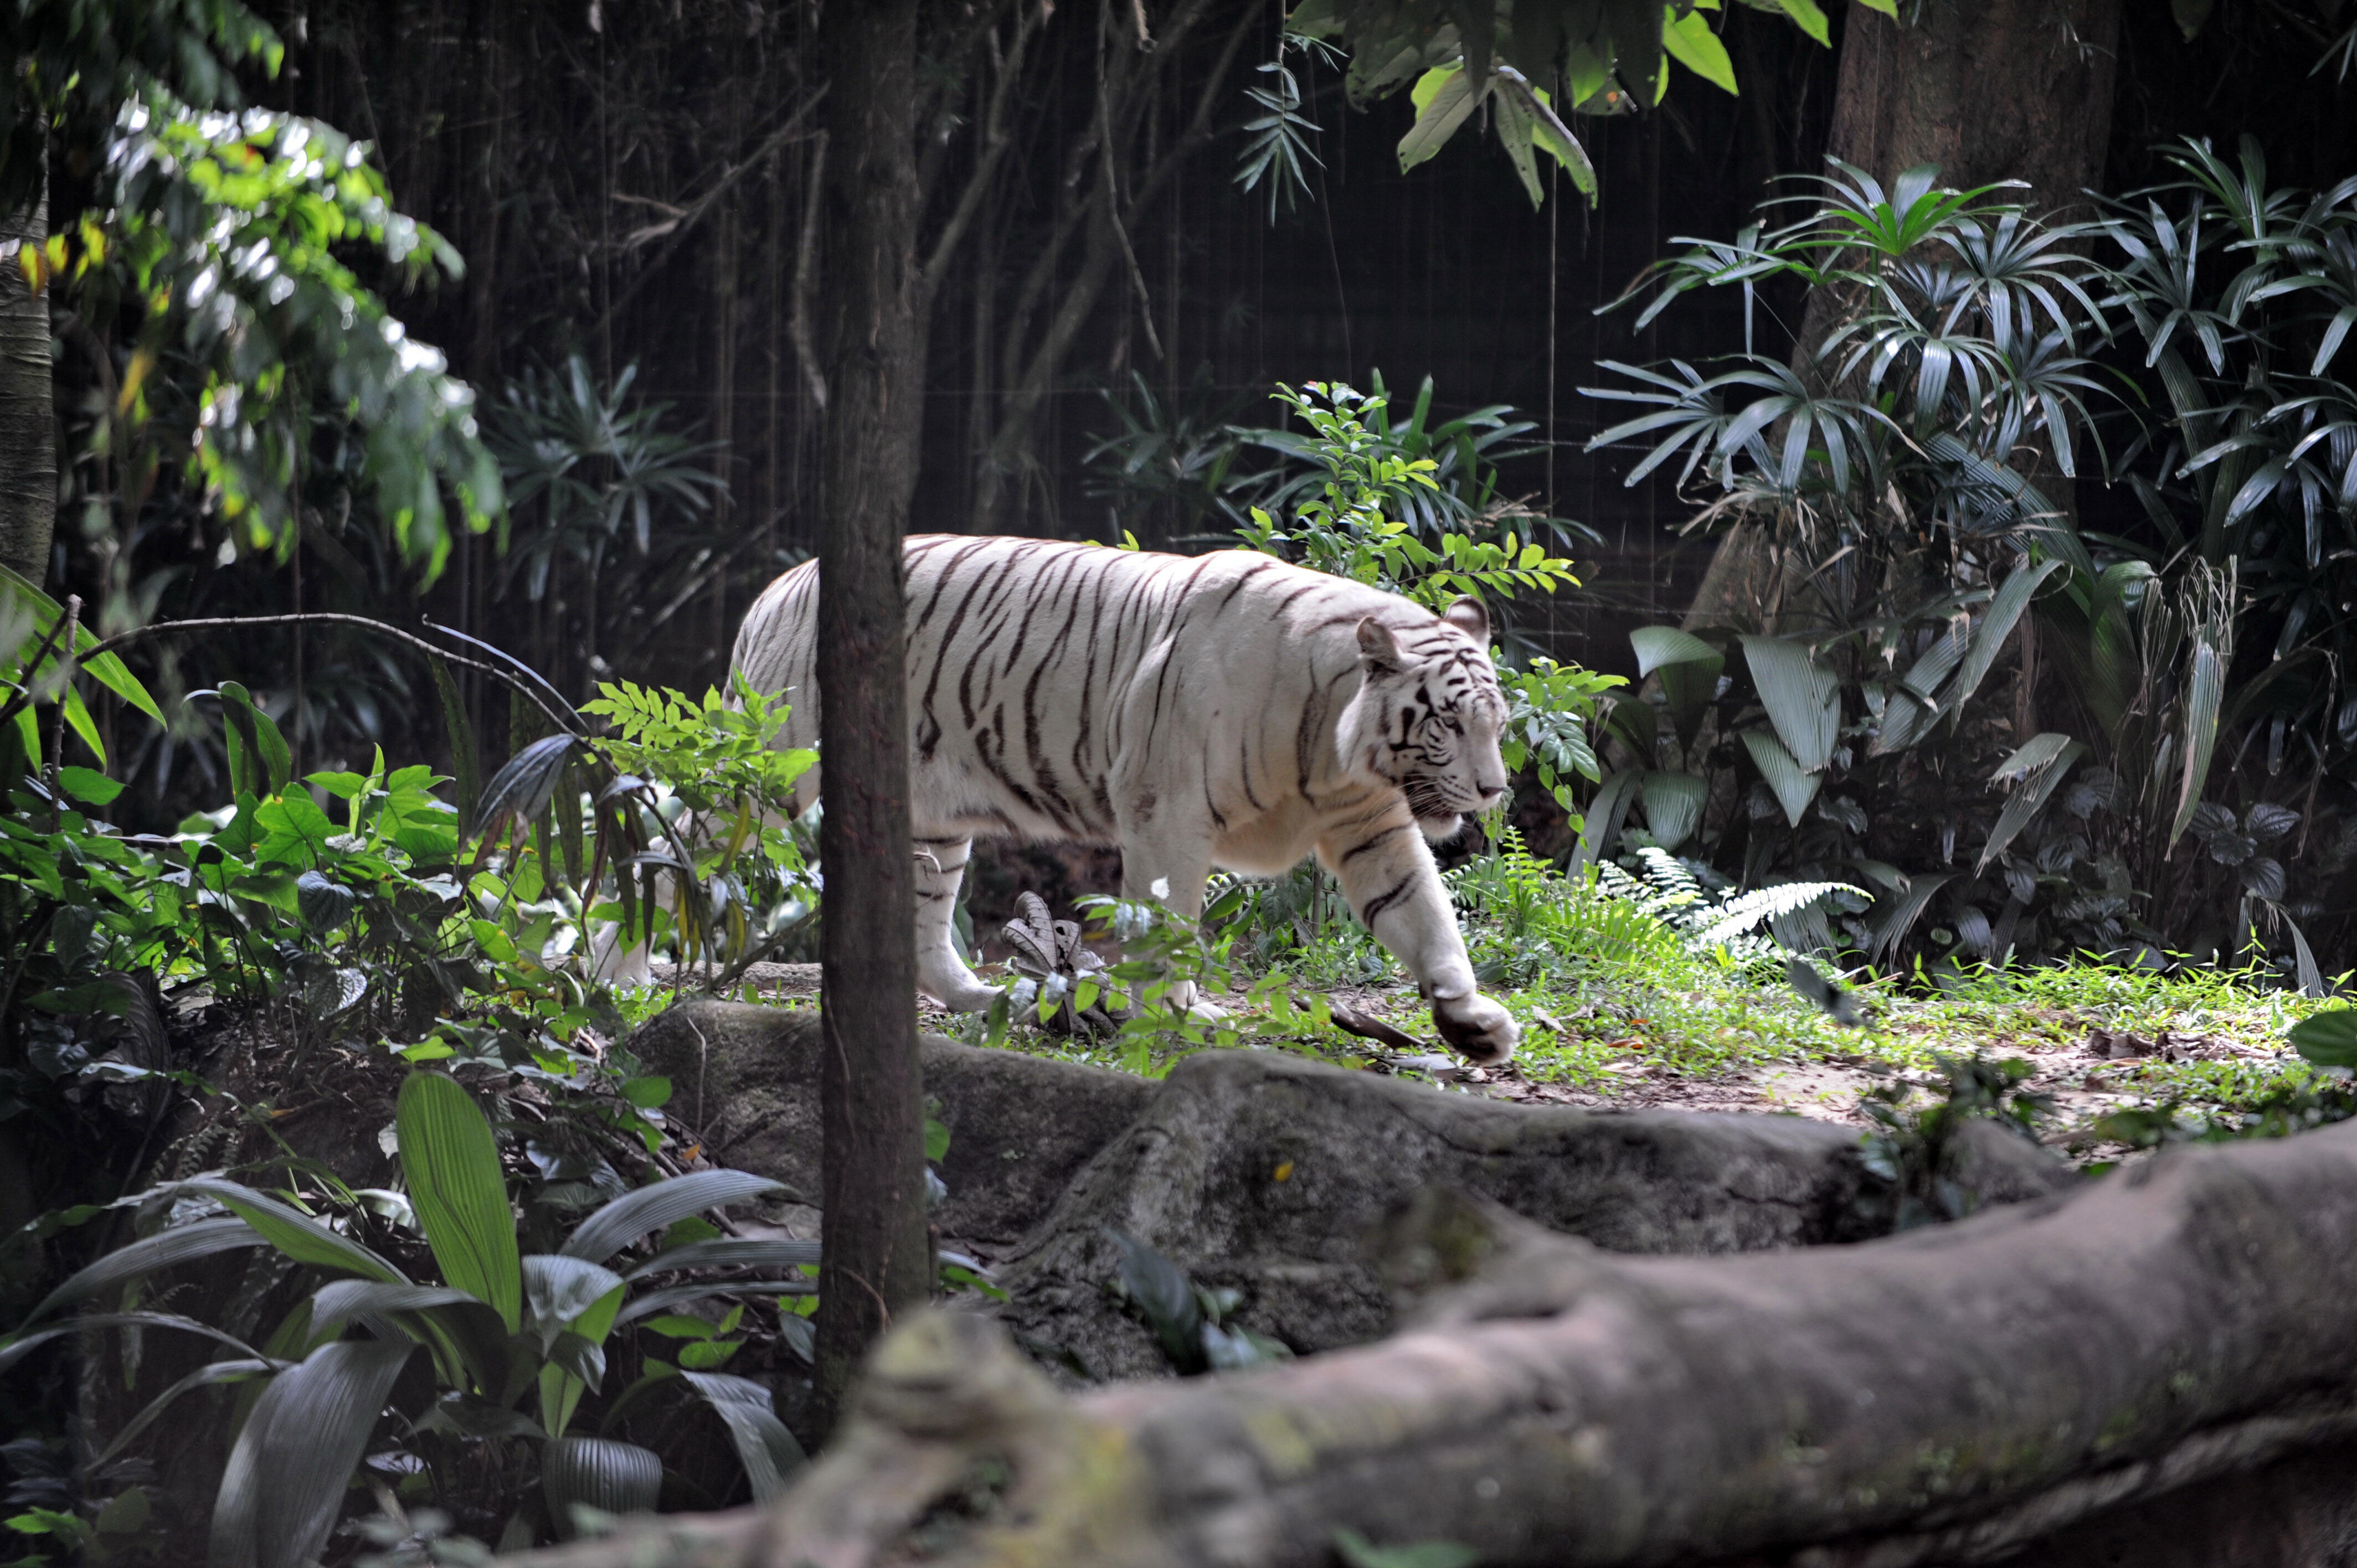 Singapore-wildlife-science-tourism-animals,FEATURE by Philip Lim Photo taken on January 13, 2010 shows a white tiger roaming around within its enclosure at the zoological garden in Singapore.  Sporting spiked hair and silver earrings in each ear, Samuel T